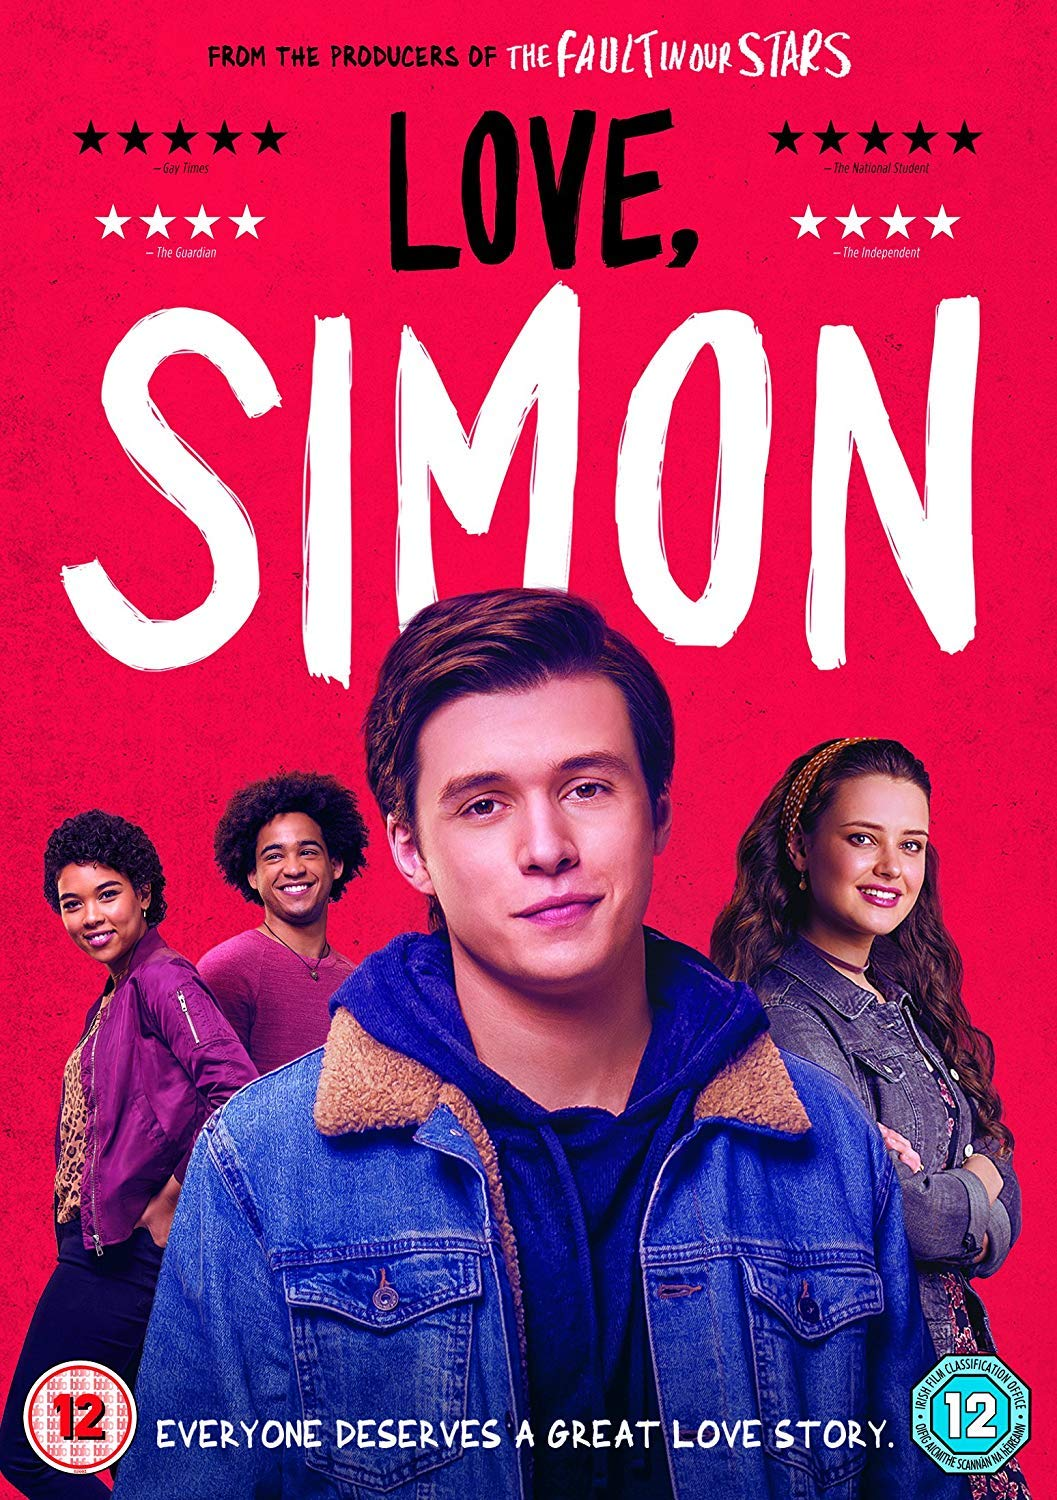 Amazon.com: Love, Simon [DVD] [2018]: Movies & TV